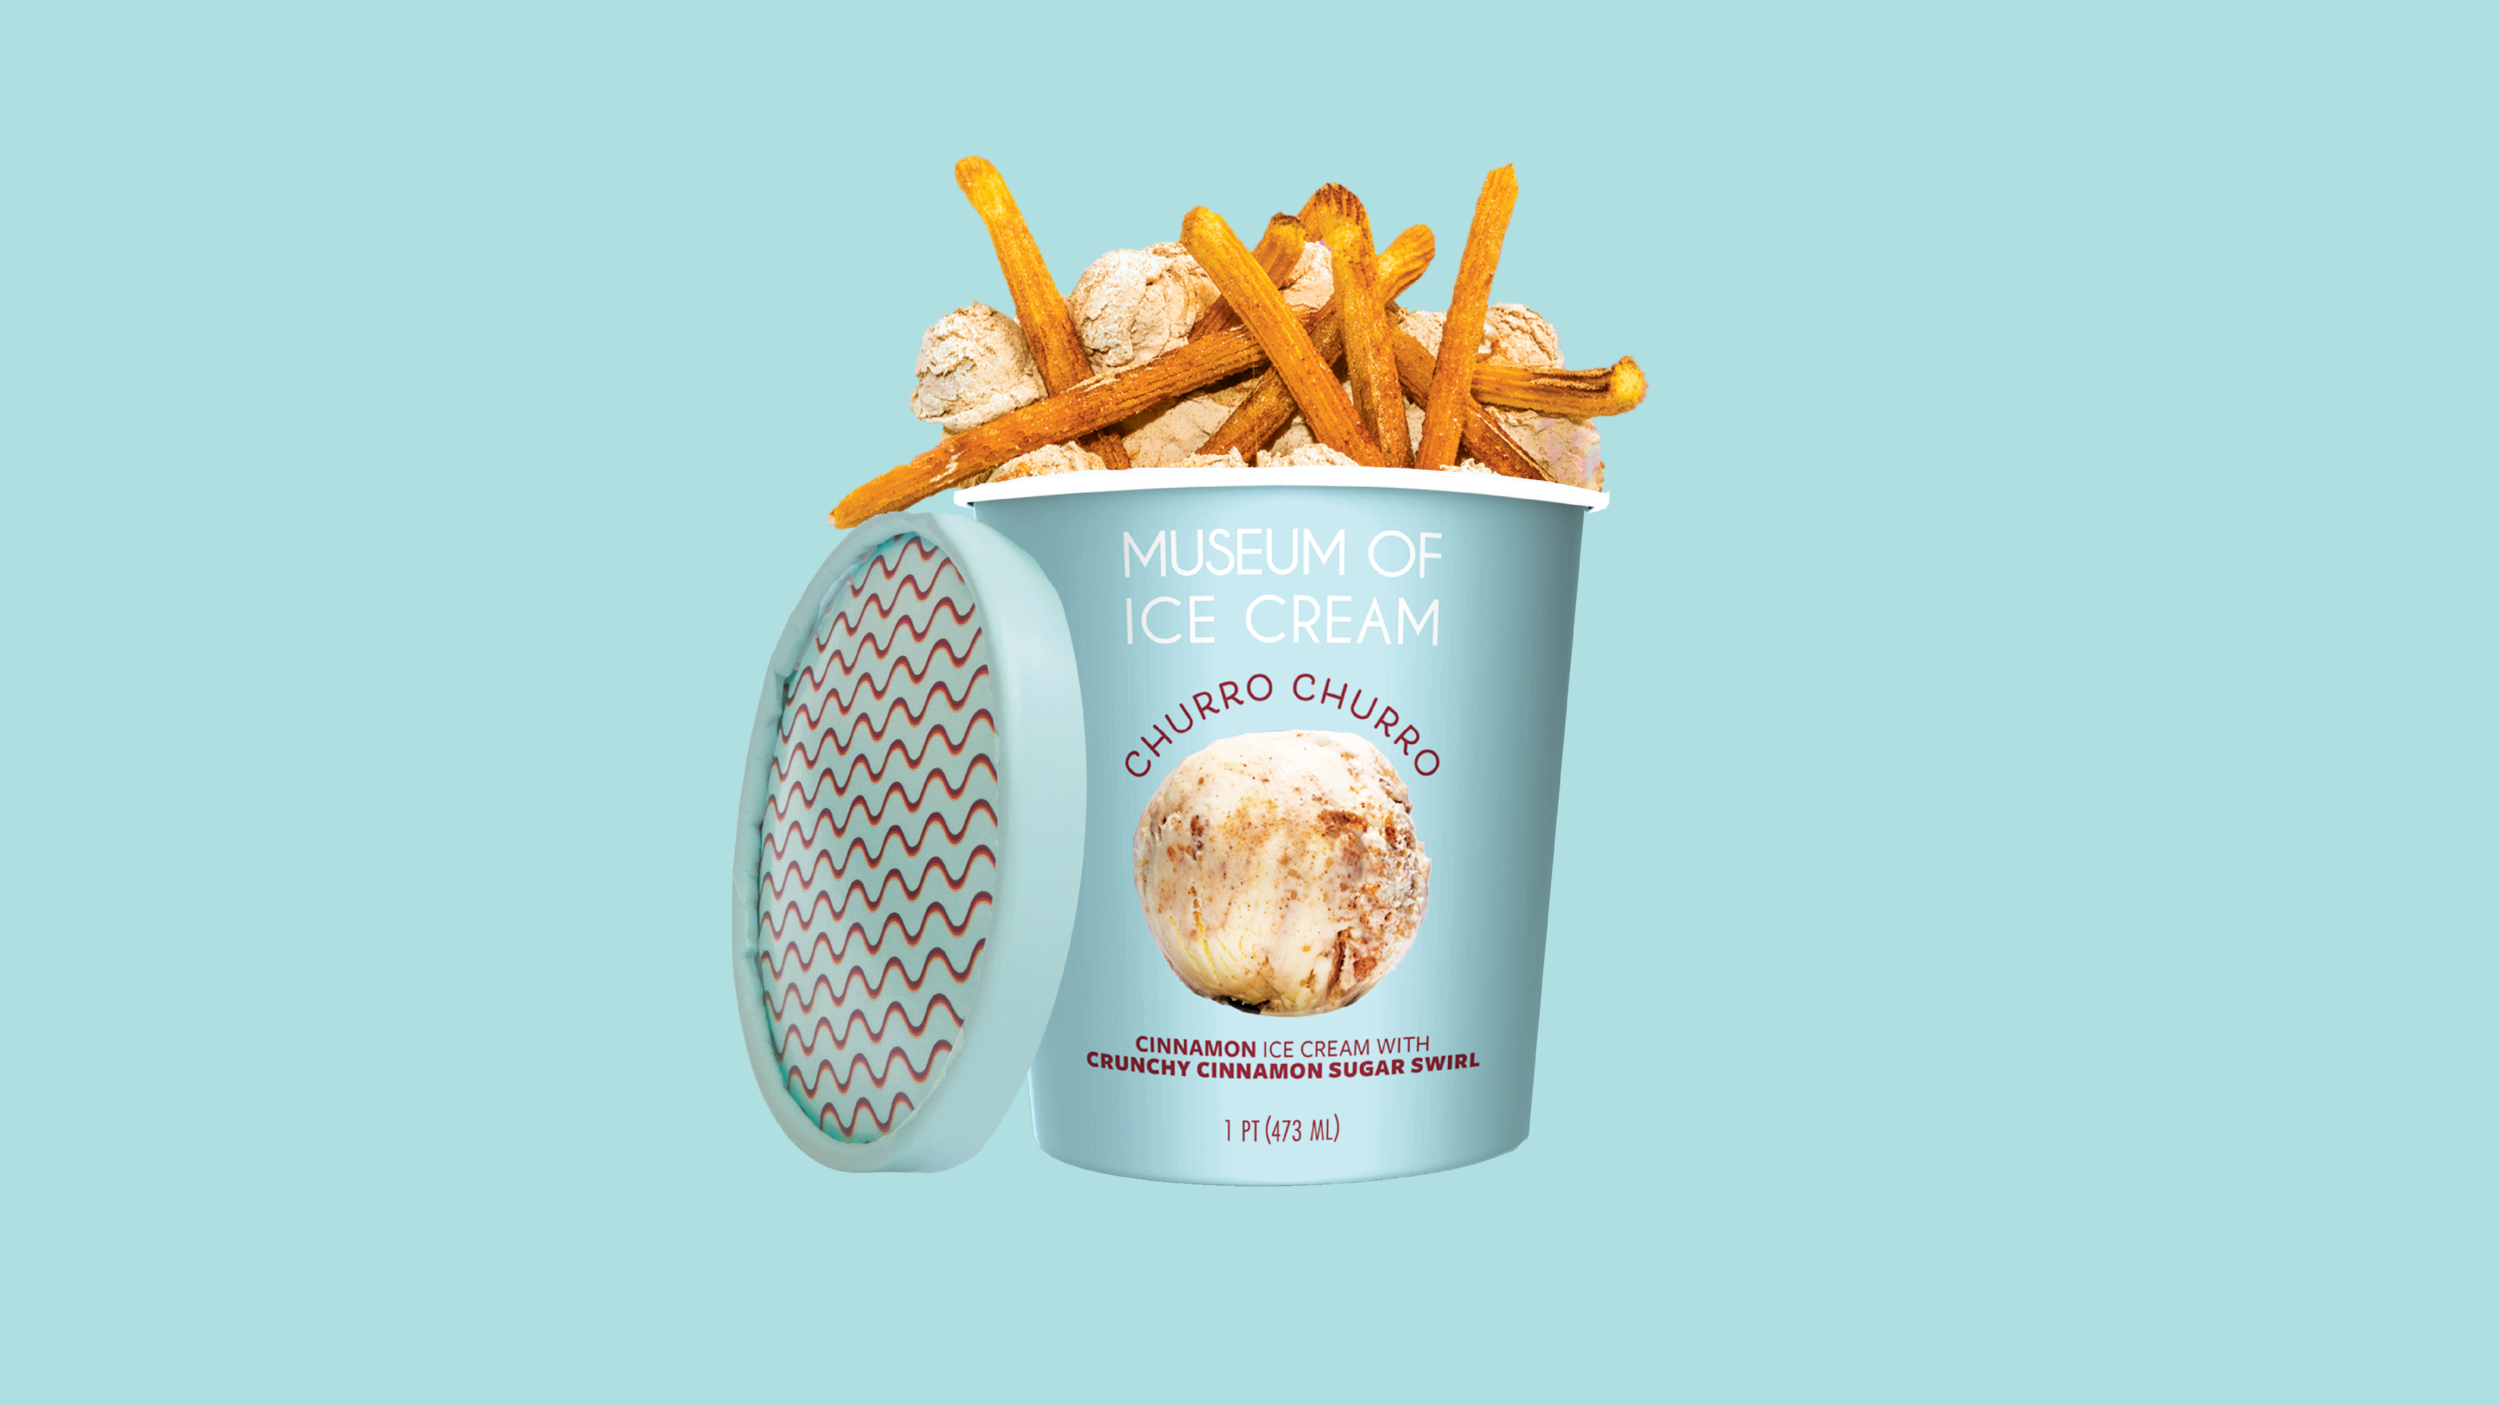 Museum-of-ice-cream_ice-cream_churro-churro.png